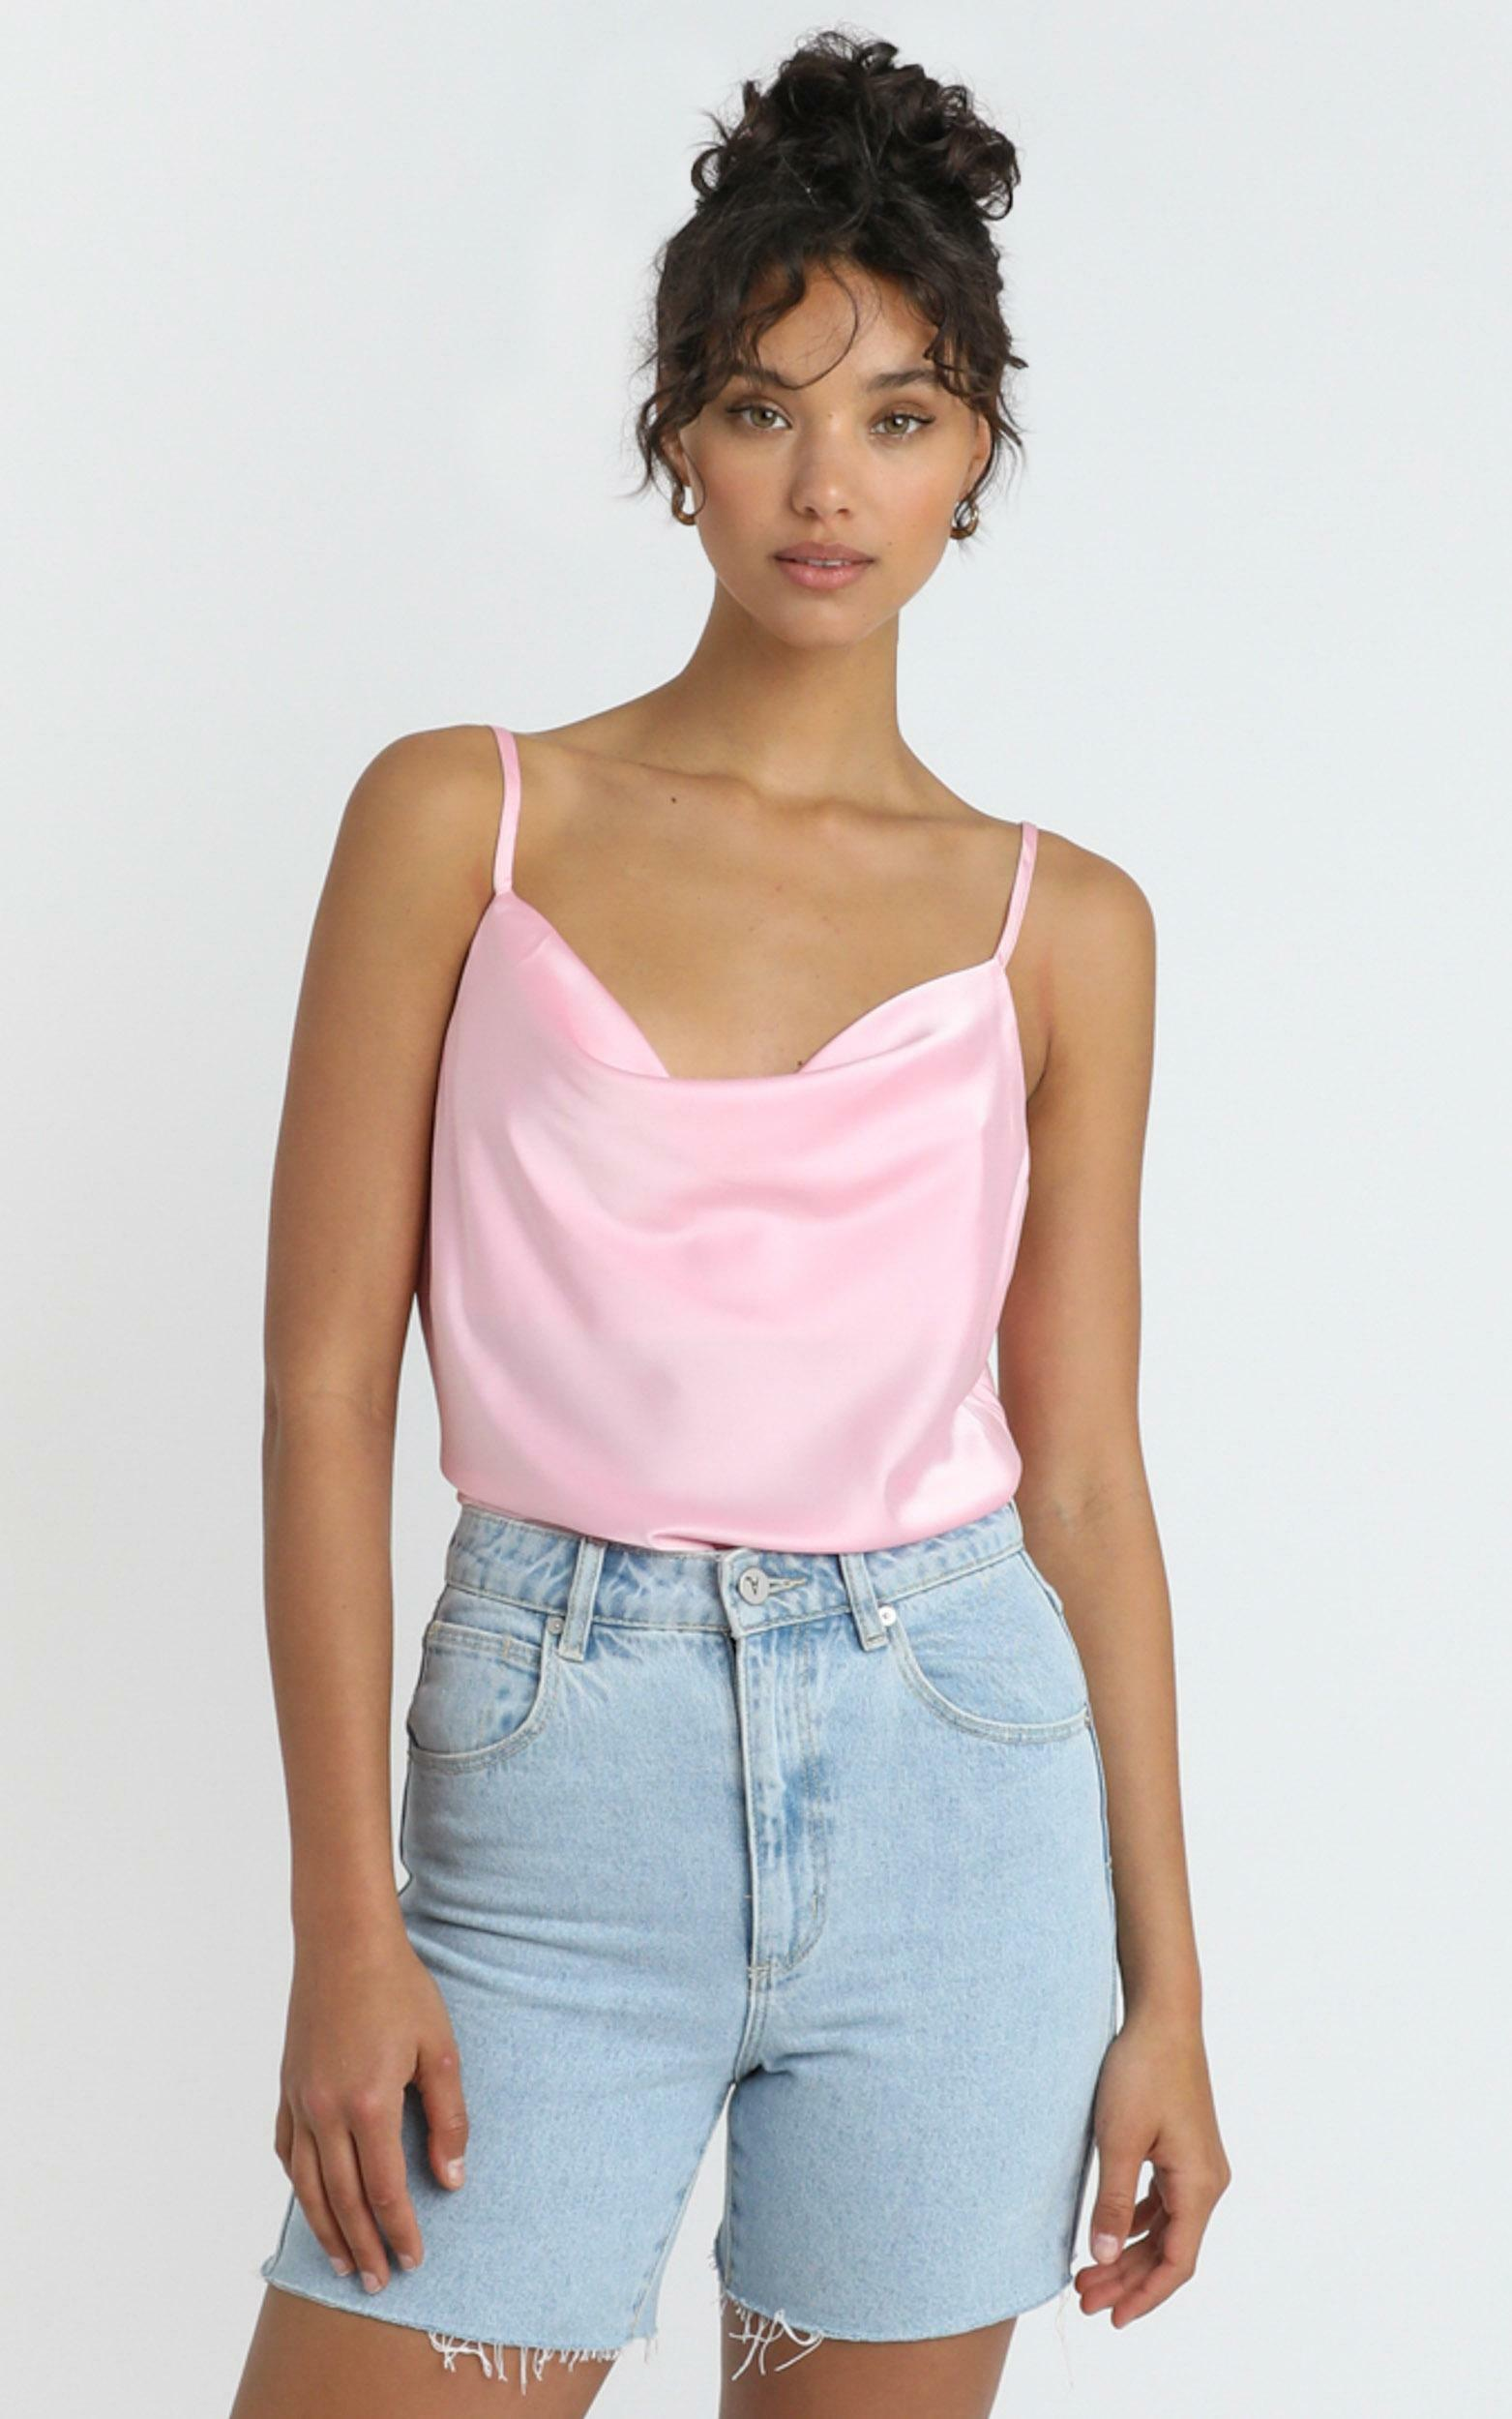 Straight Line Top in soft pink - 4 (XXS), PNK3, hi-res image number null